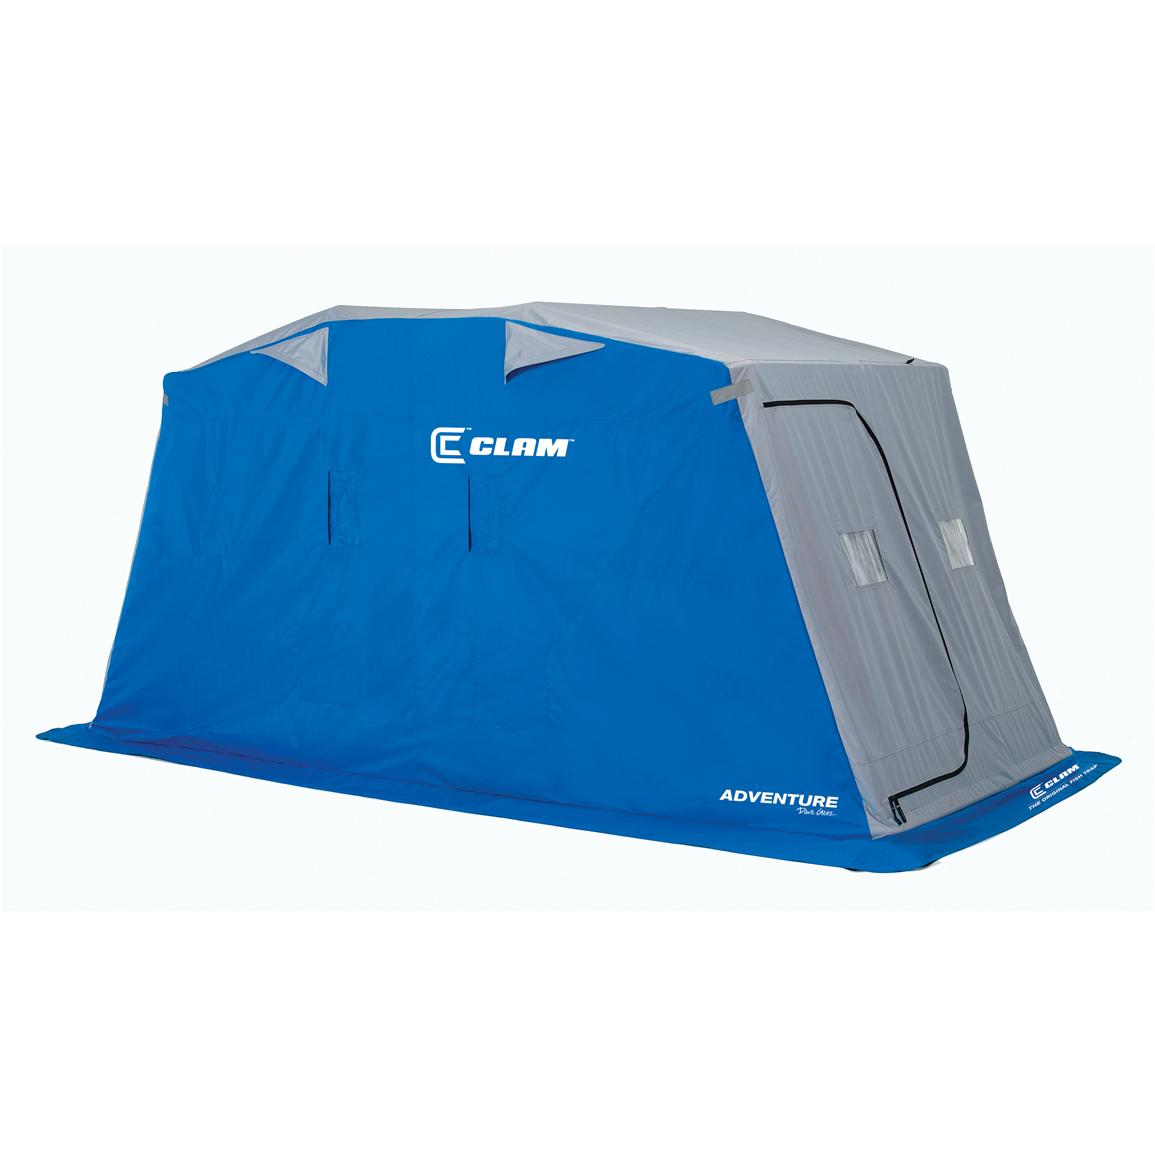 Clam™ Fish Trap Adventure X-Series 4-person Ice Shelter